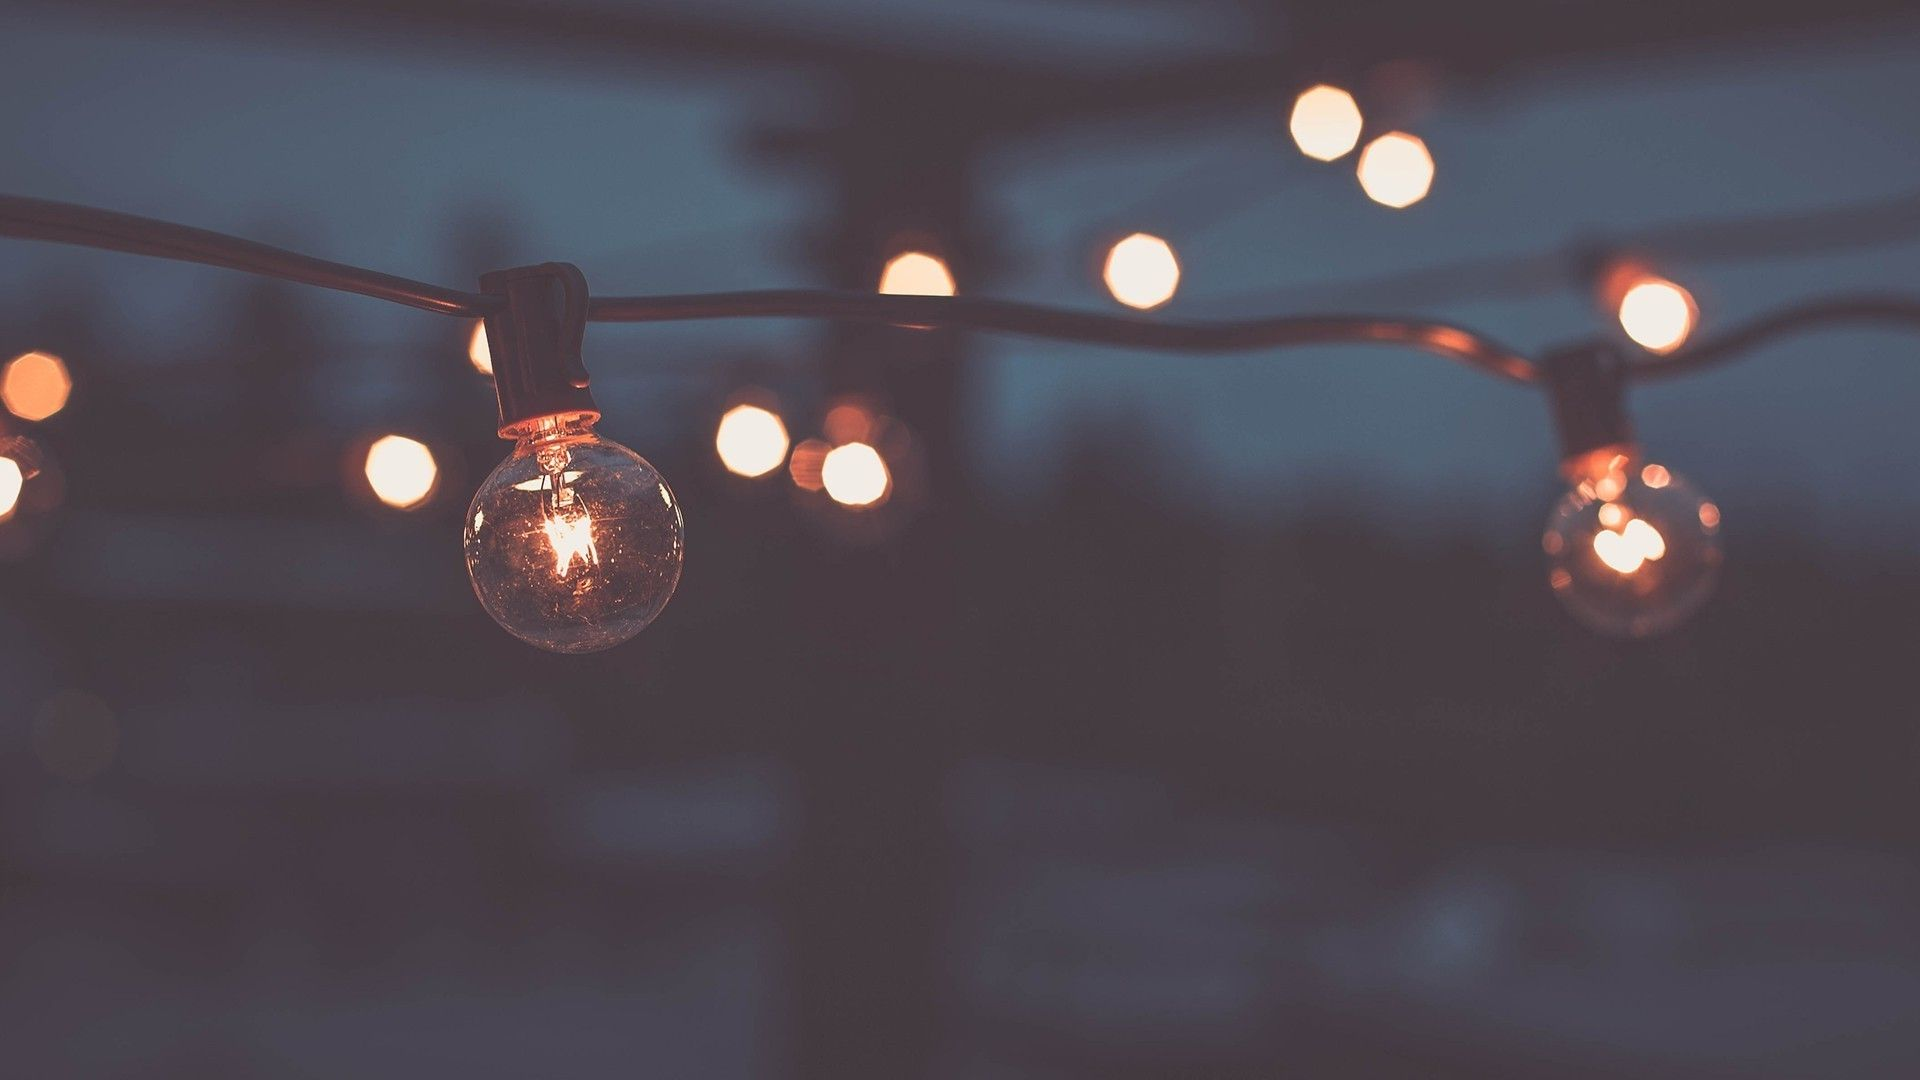 String Light Bulbs Light Bulbs Pinterest Light Bulb Bulbs And Wallpaper